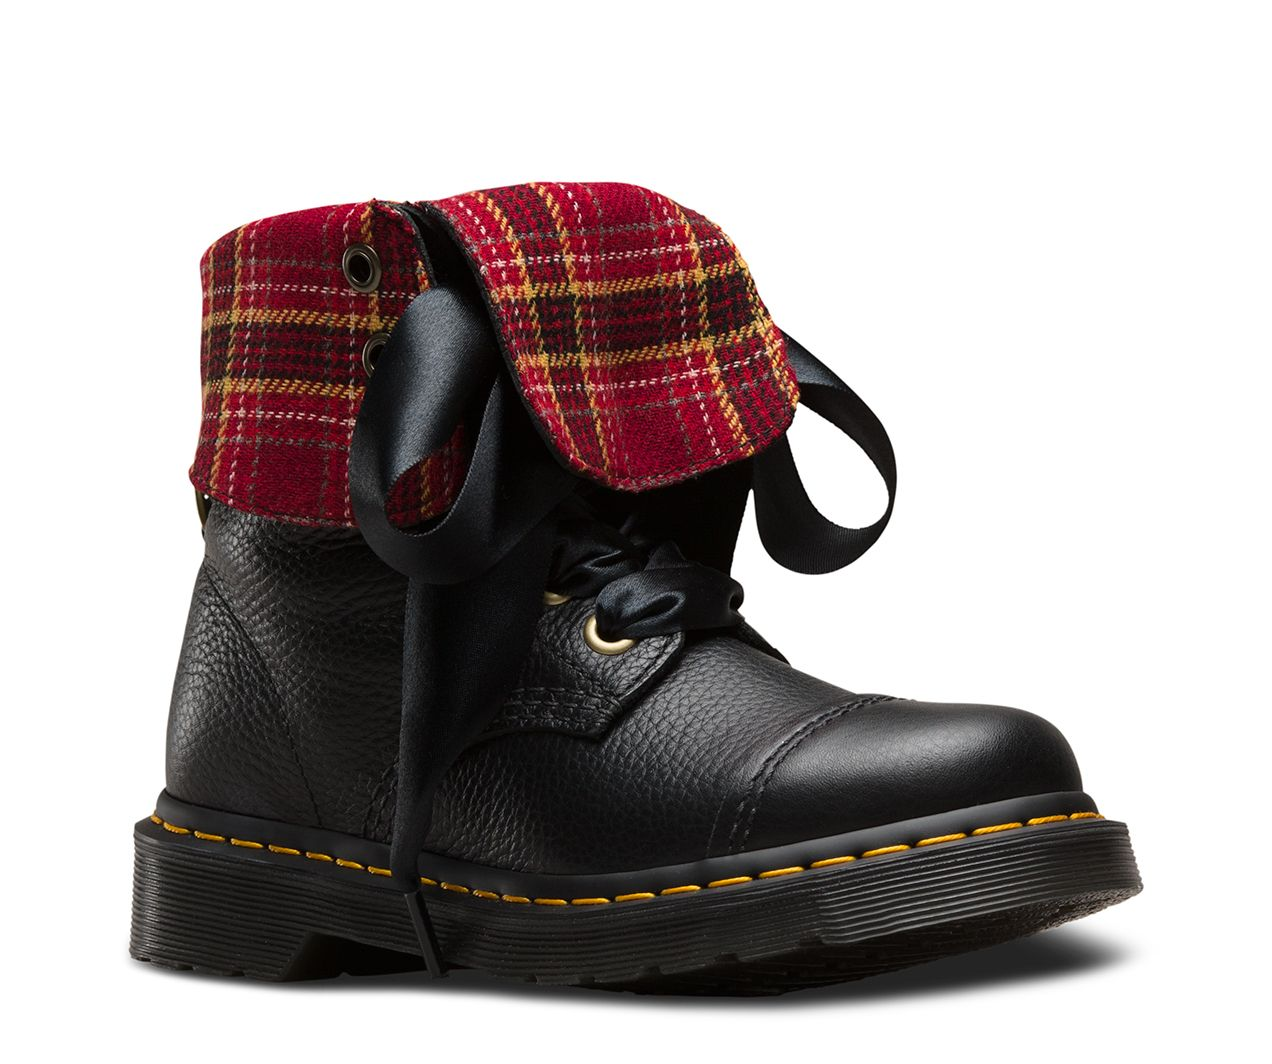 DR MARTENS AIMILITA LEATHER HIGH BOOTS